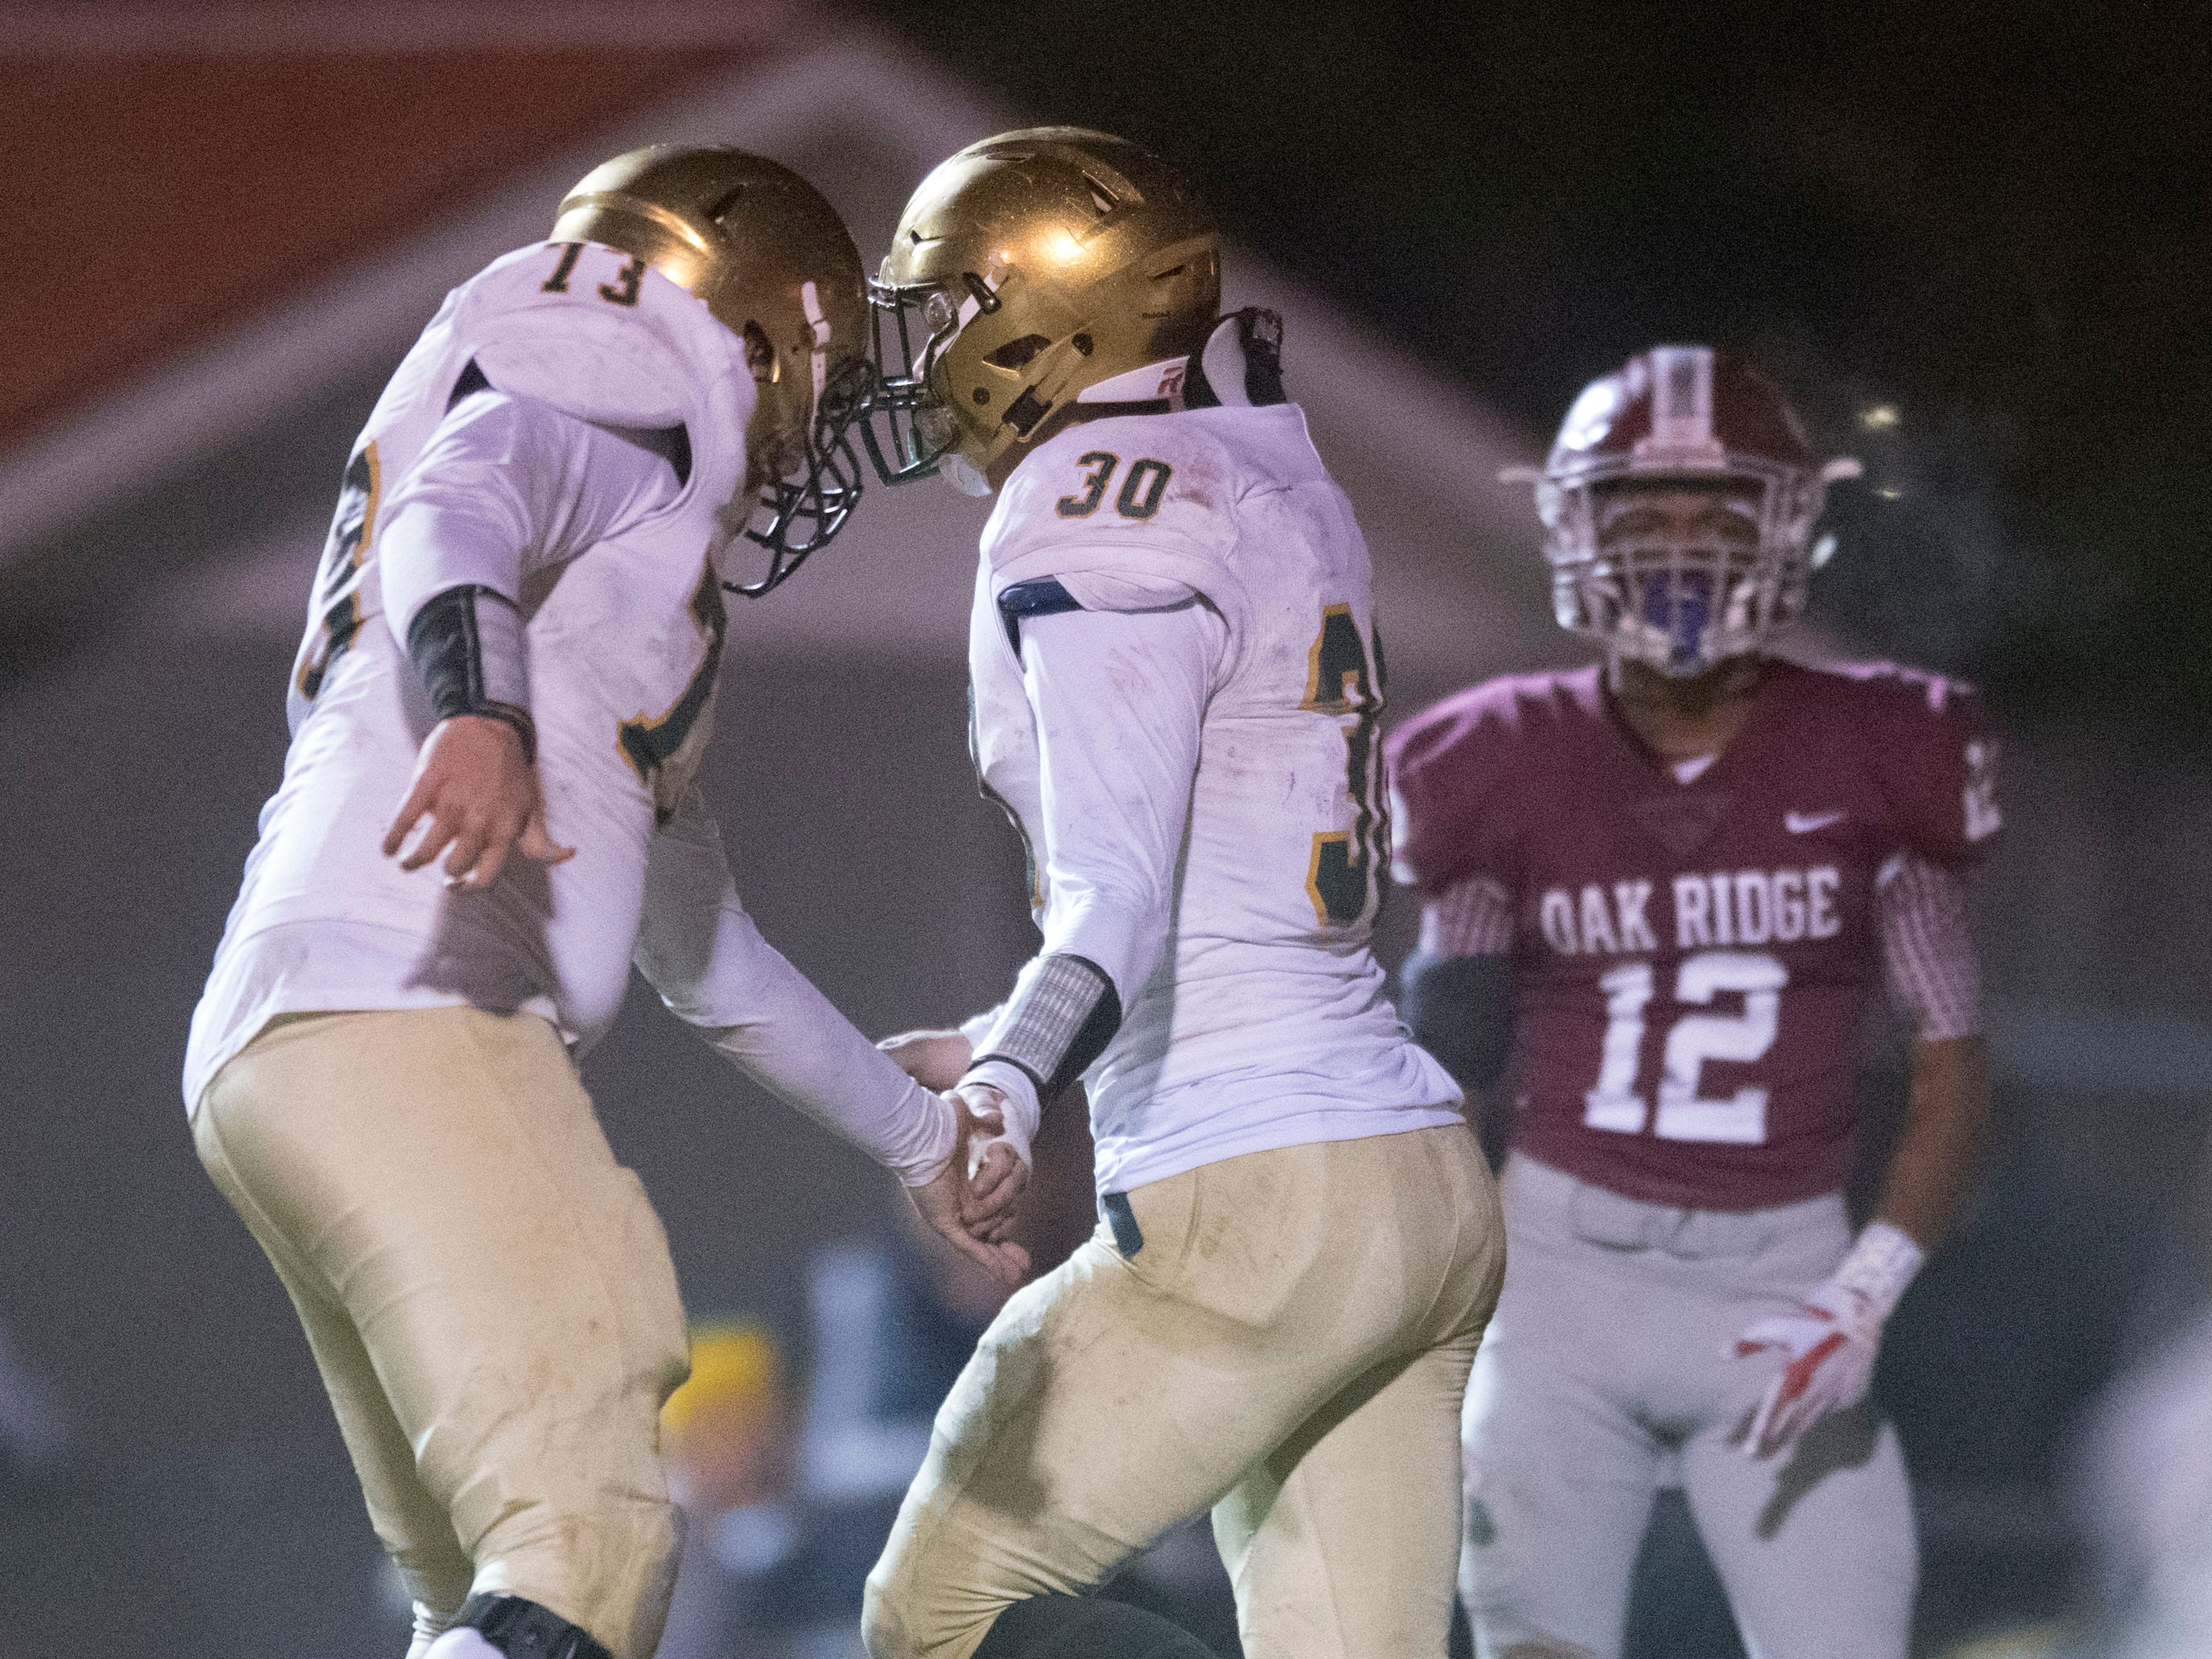 Knoxville Catholic's Ray Thompson (13) and Cody Duncan (30) celebrate after Duncan scored a touchdown. Knoxville Catholic defeats Oak Ridge, 42-40 in the 5A quarterfinals on Friday, November 16, 2018.